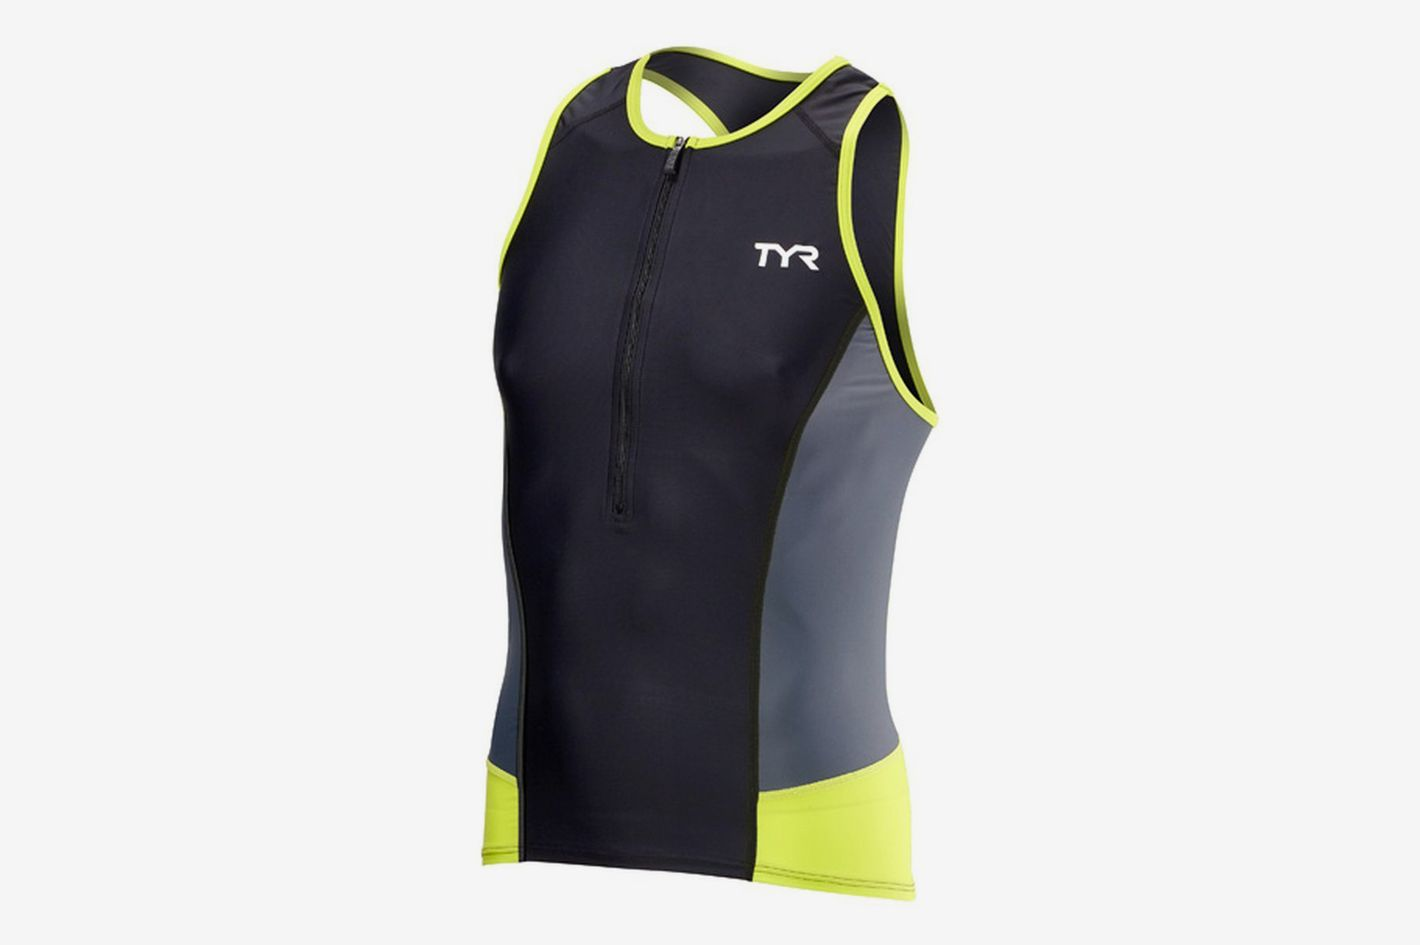 Men's TYR Competitor Tri Tank